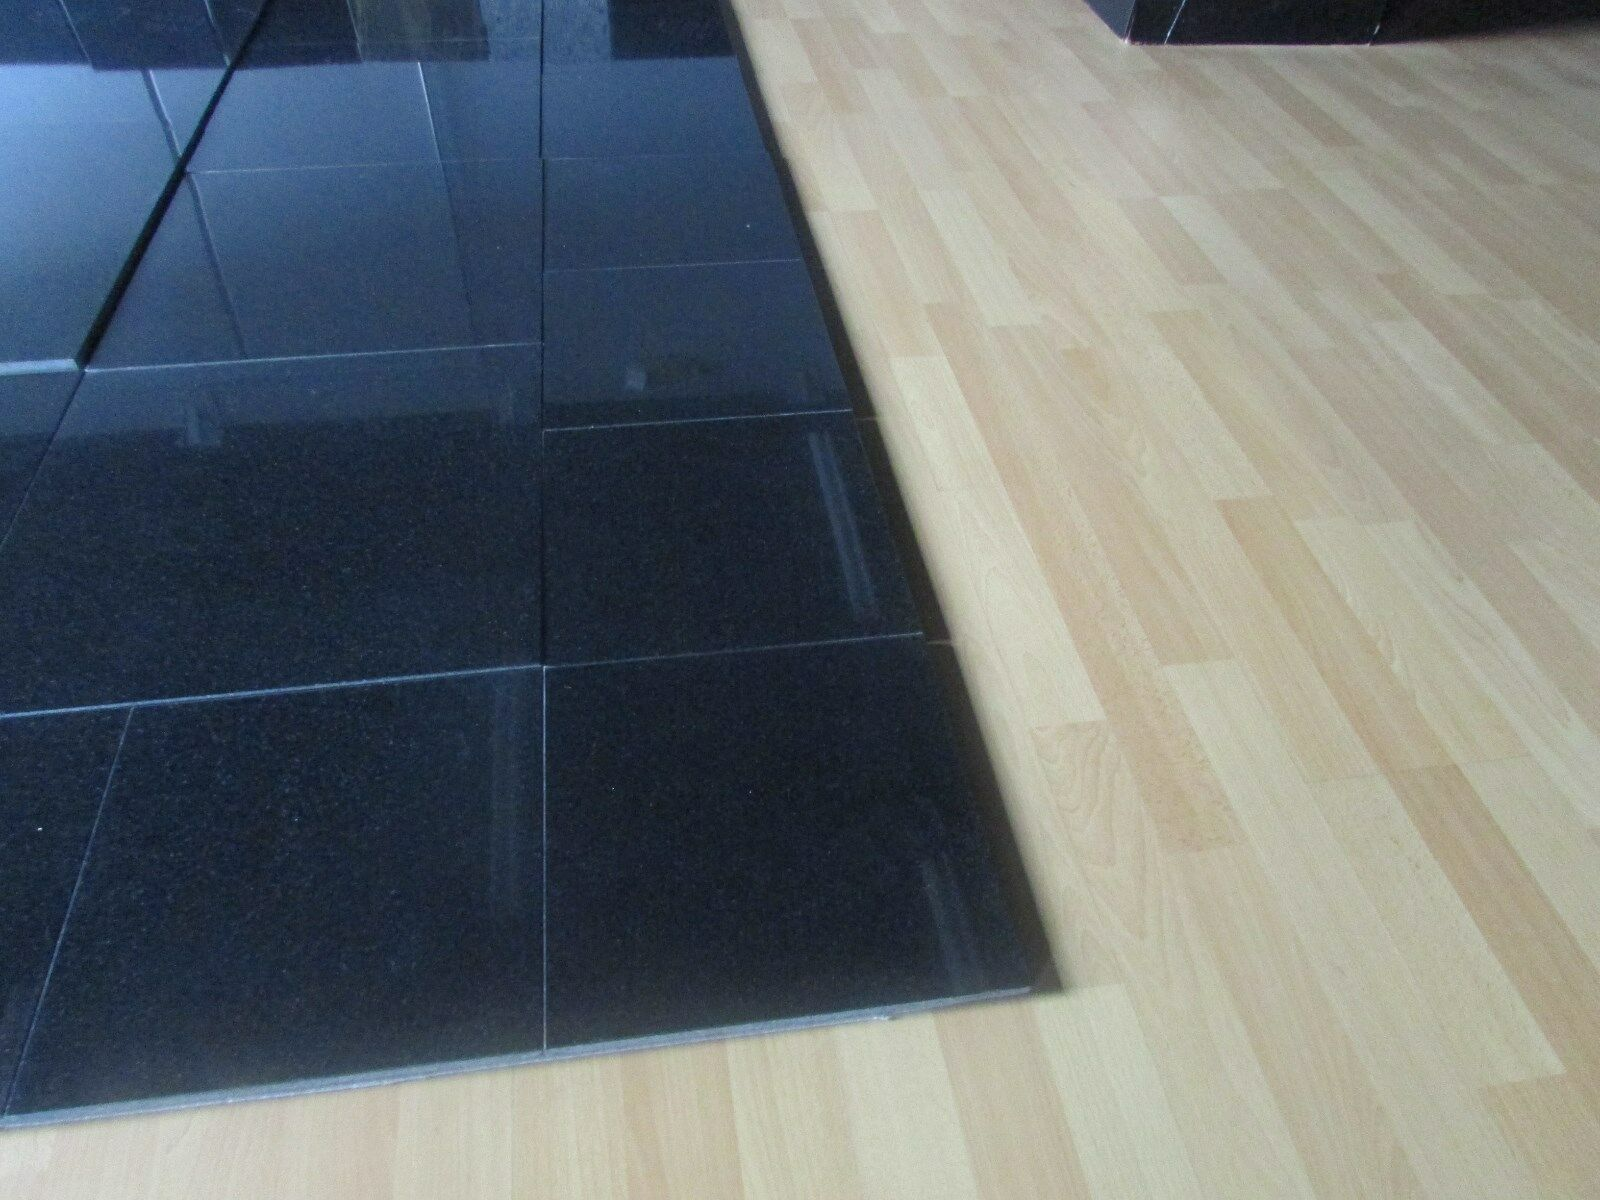 Granite Floor Tiles In Polished Black Absolute Size 12x12x1cm Ebay